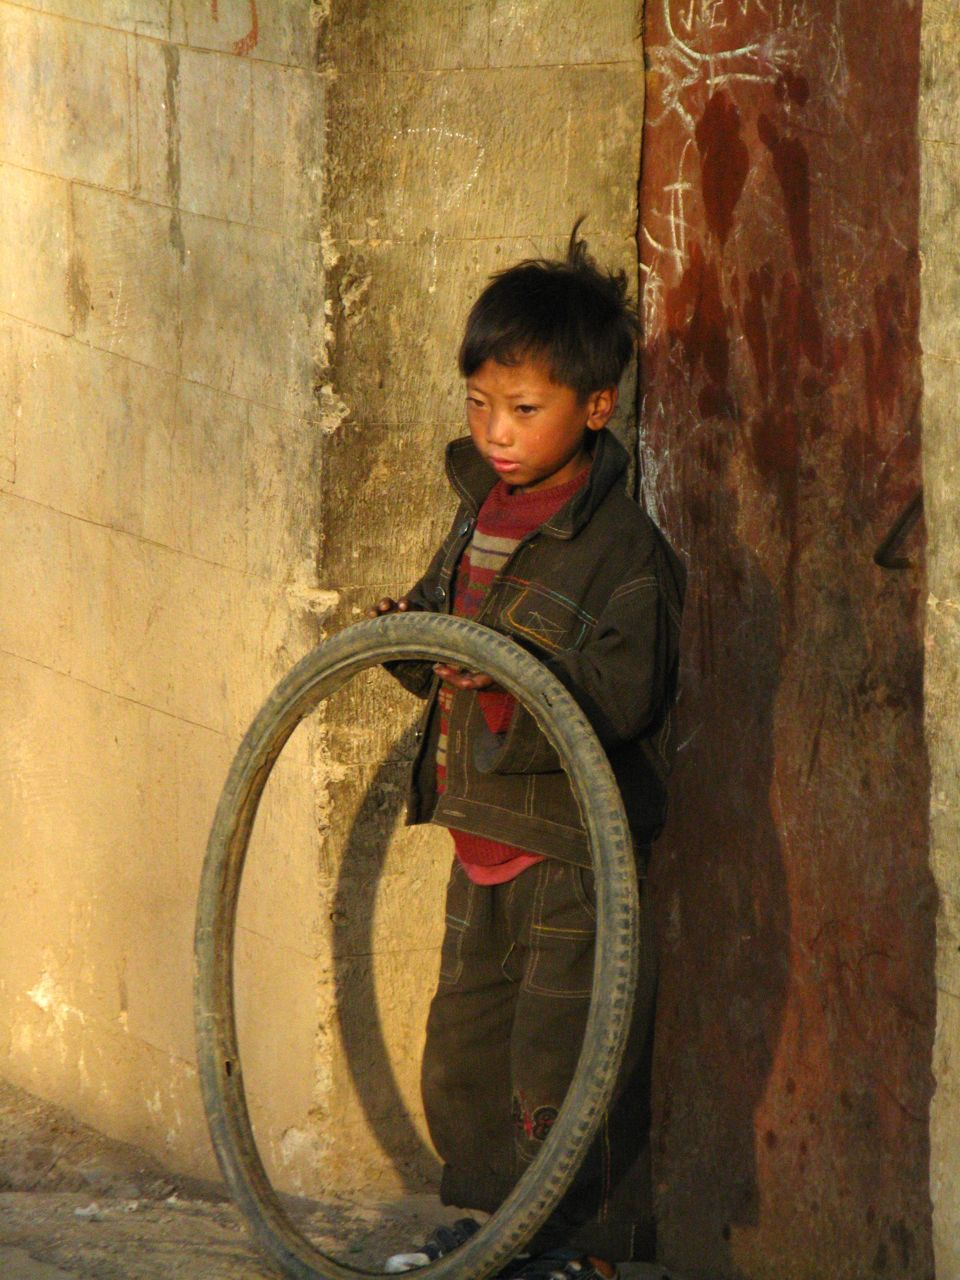 Rurlal chinese boy boy with tire